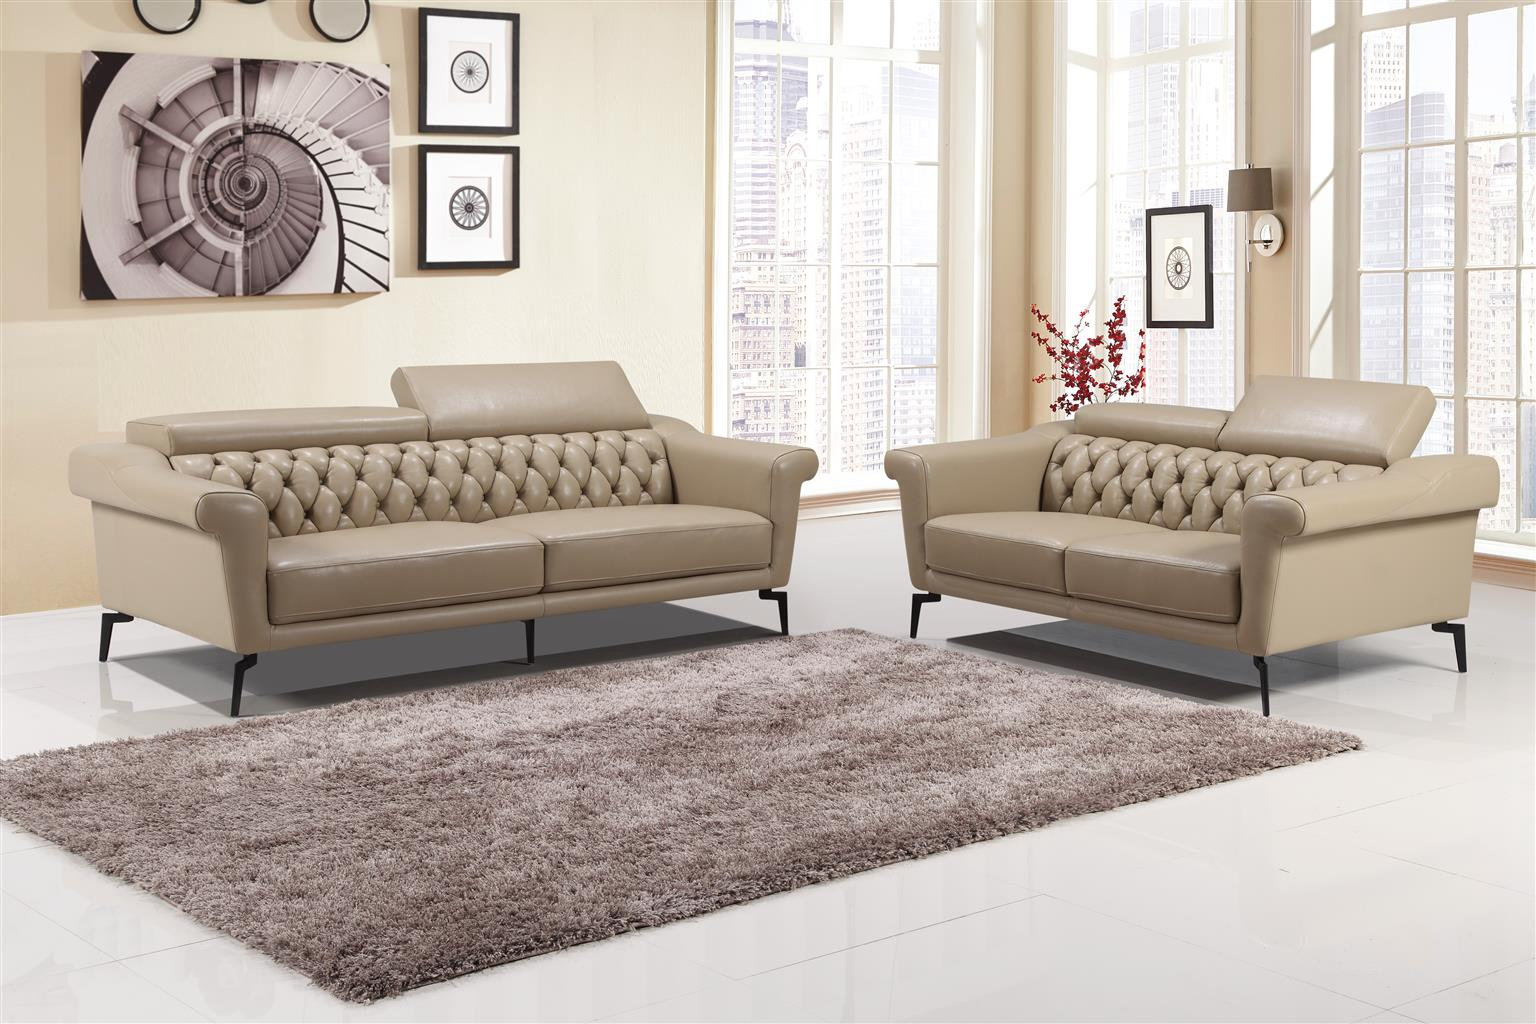 2 & 3 SEATER CHESTERFIELD LOUNGE SUITE BRAND NEW  FOR ONLY R 12 499!!!!!!!!!!!!!!!!!!!